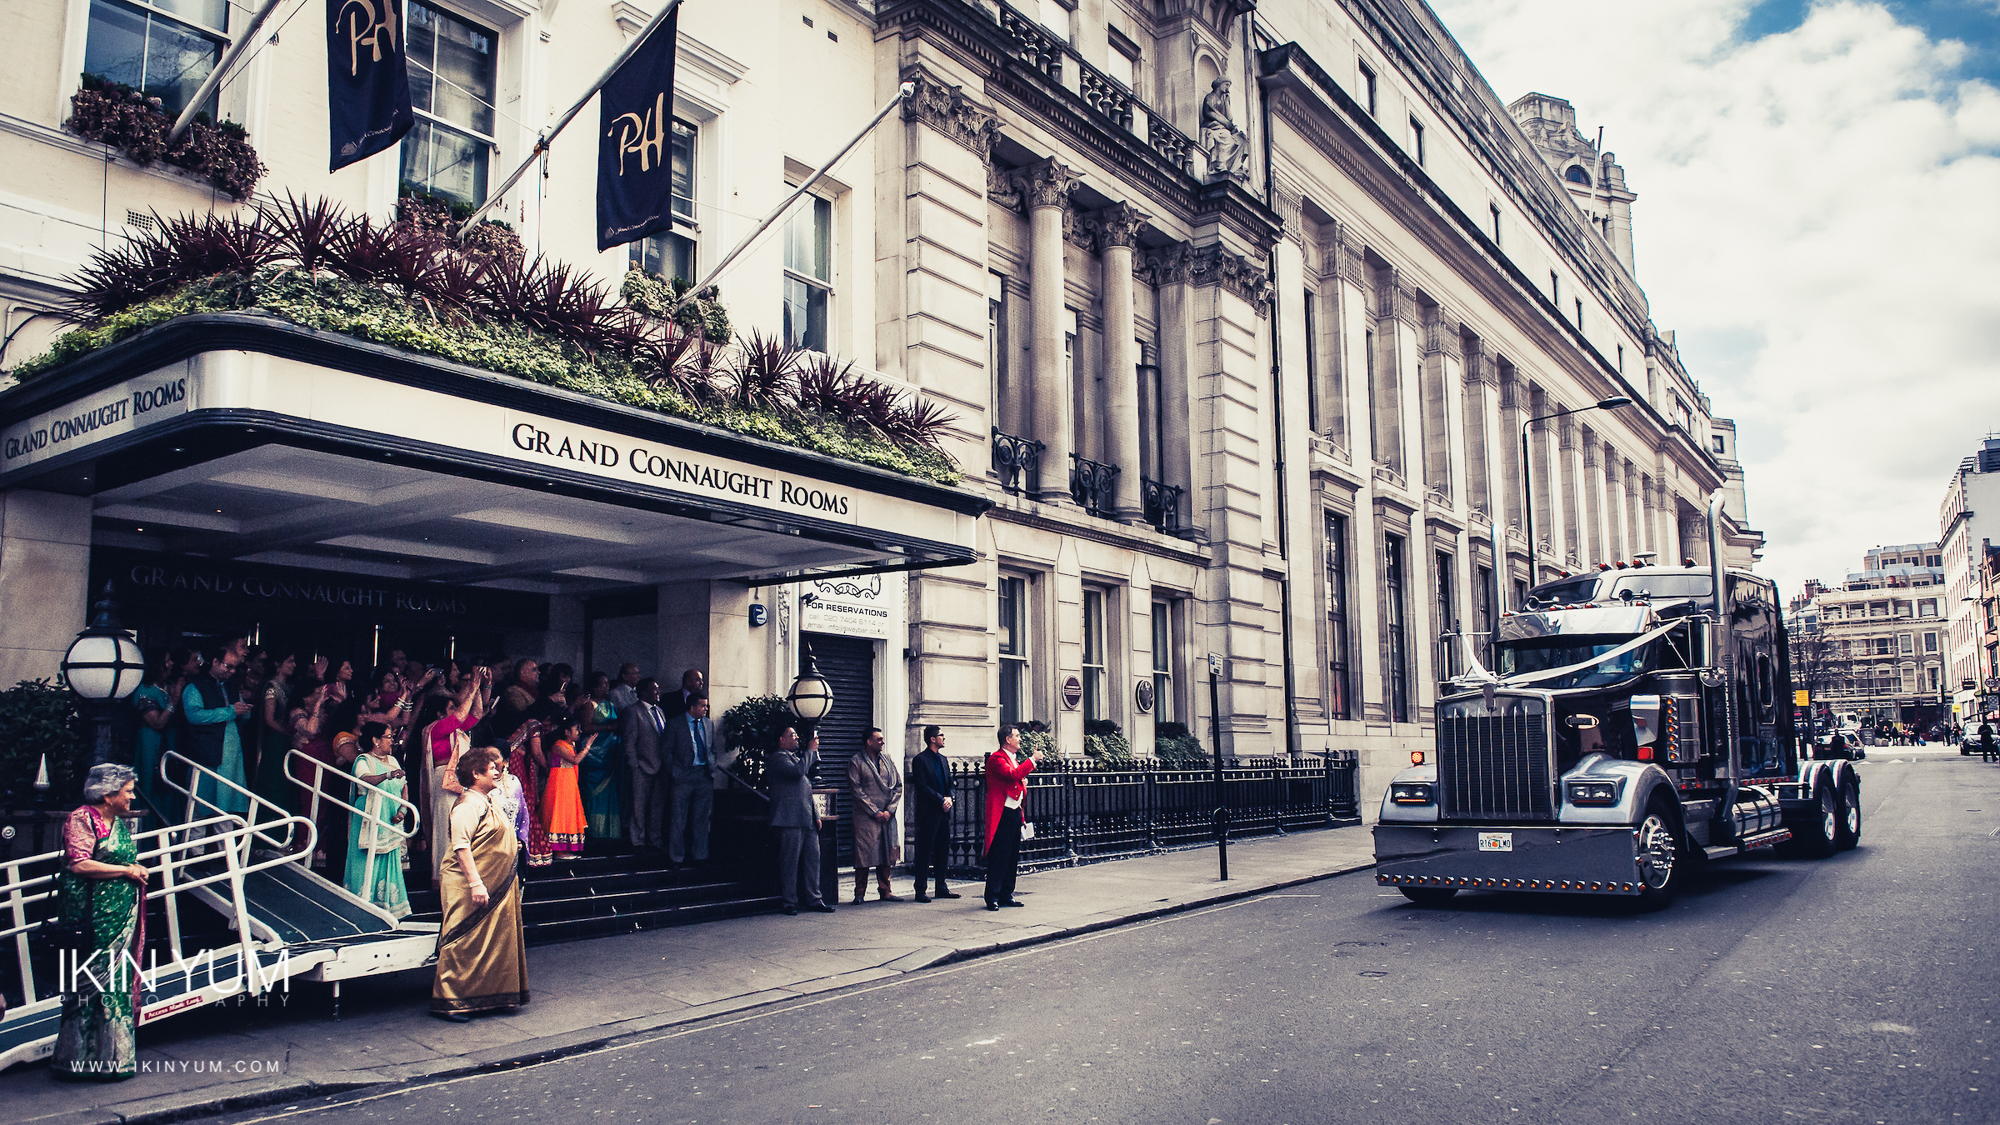 Grand Connaught Rooms Wedding - Minal & Raj - Ikin Yum Photography-034.jpg